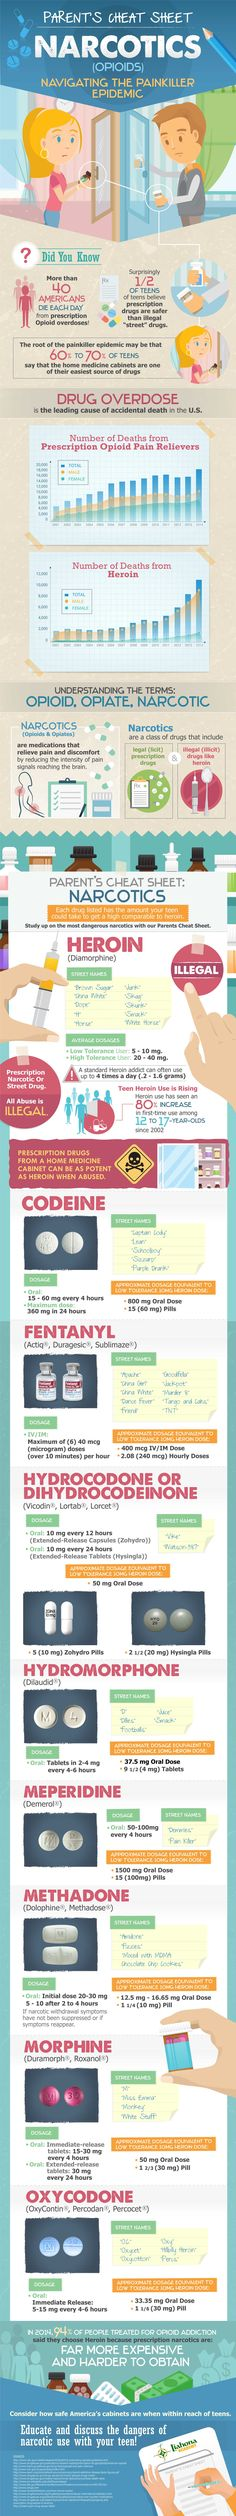 Parents Cheat Sheet Narcotics – Navigating the Painkiller Epidemic #Infographic #Parenting #Health